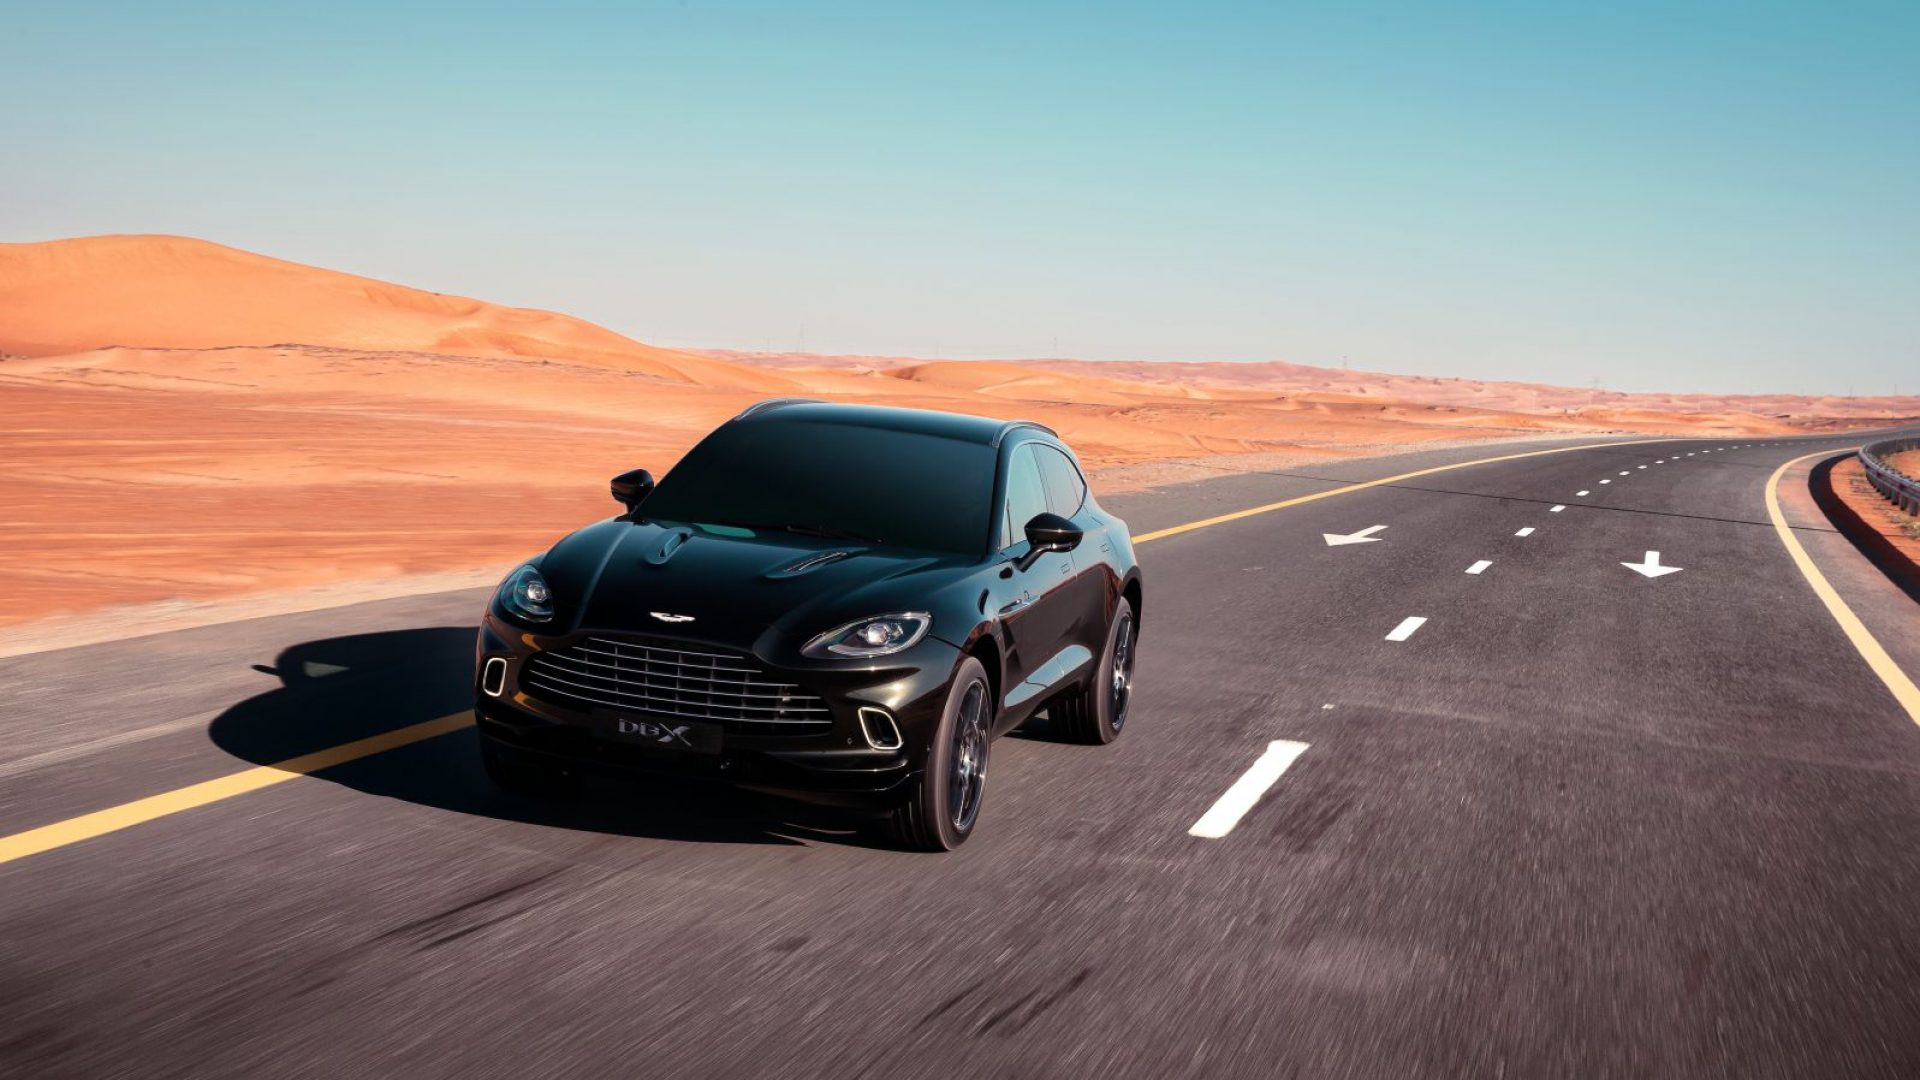 aston-martin-dbx-in-the-middle-east-24-jpg.